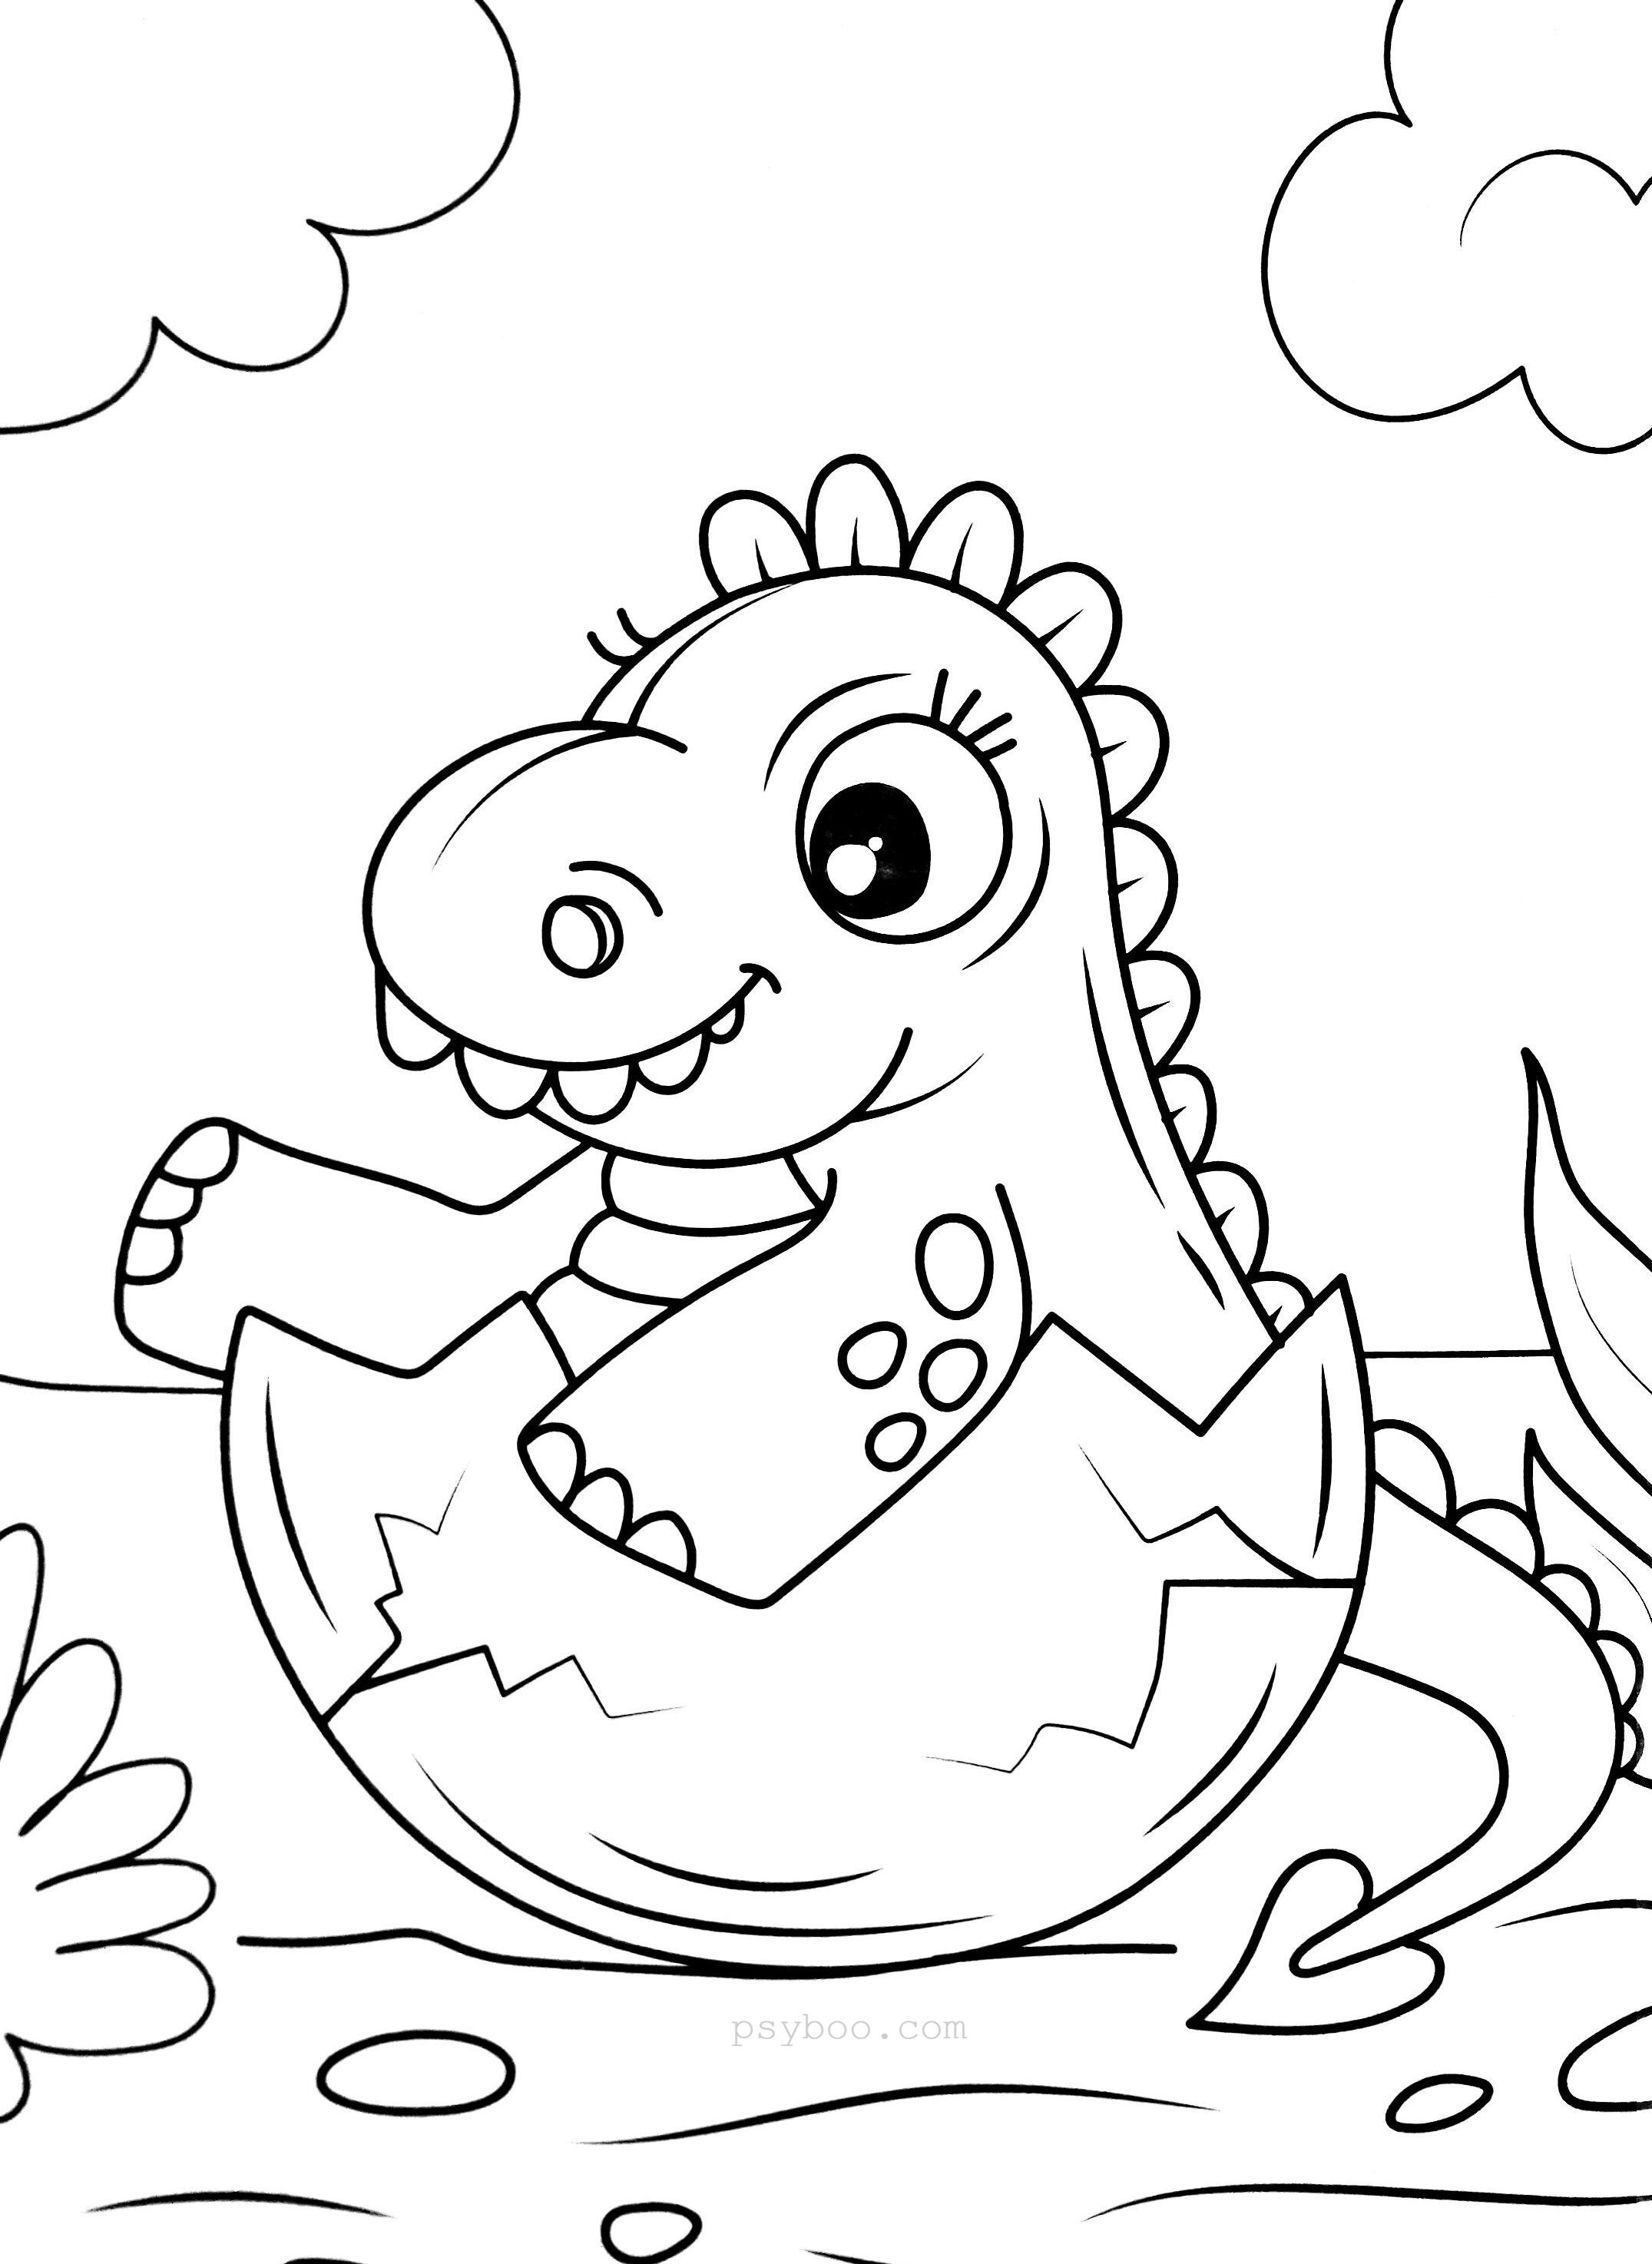 Baby Dinosaur Hatched From An Egg Coloring Page In 2020 Egg